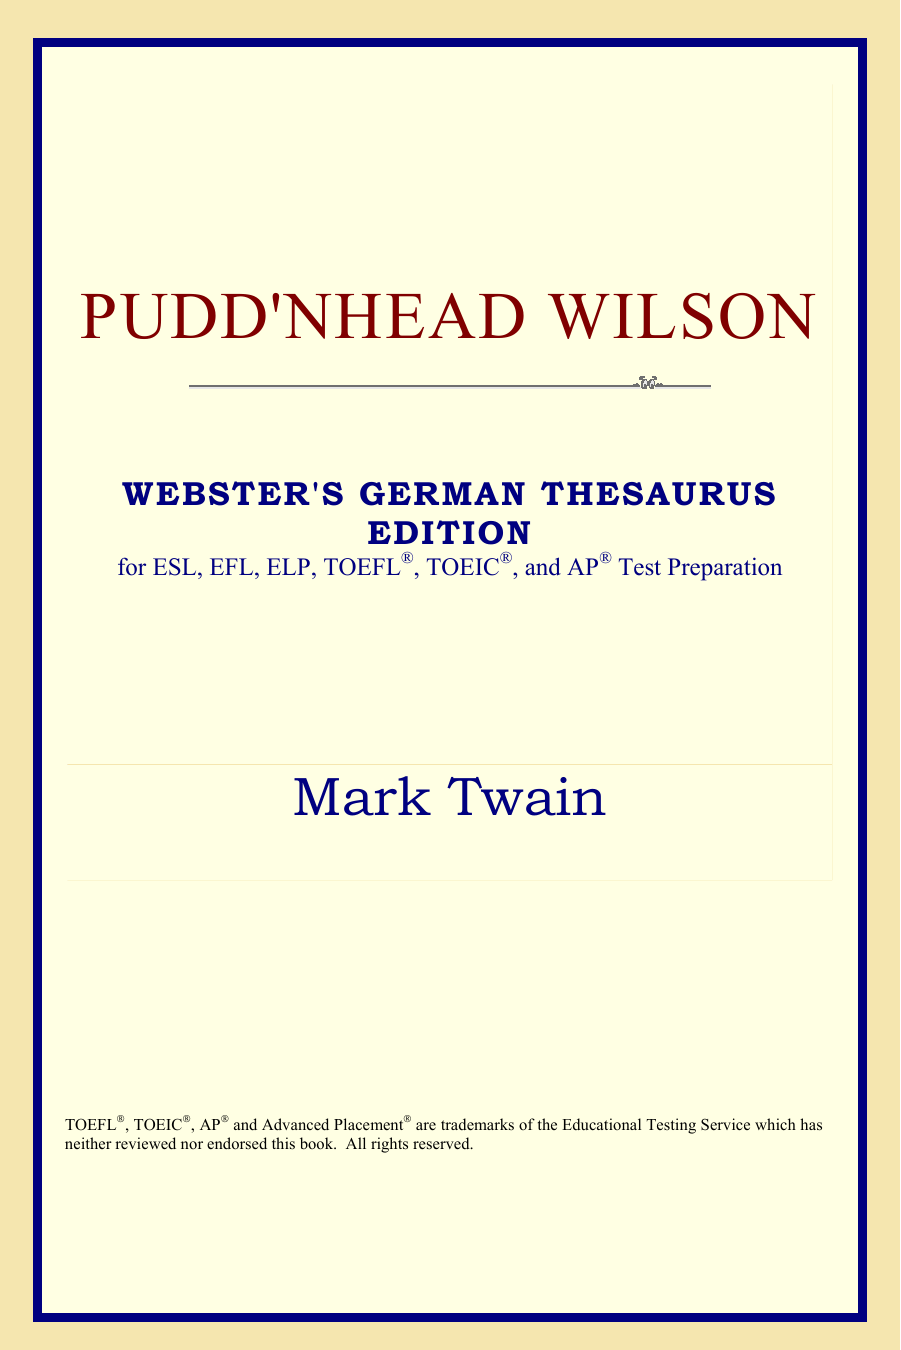 Valet De Chambre Pudd'nhead Wilson Mark Twain Puddnhead Wilson Websters German Thesaurus Edition